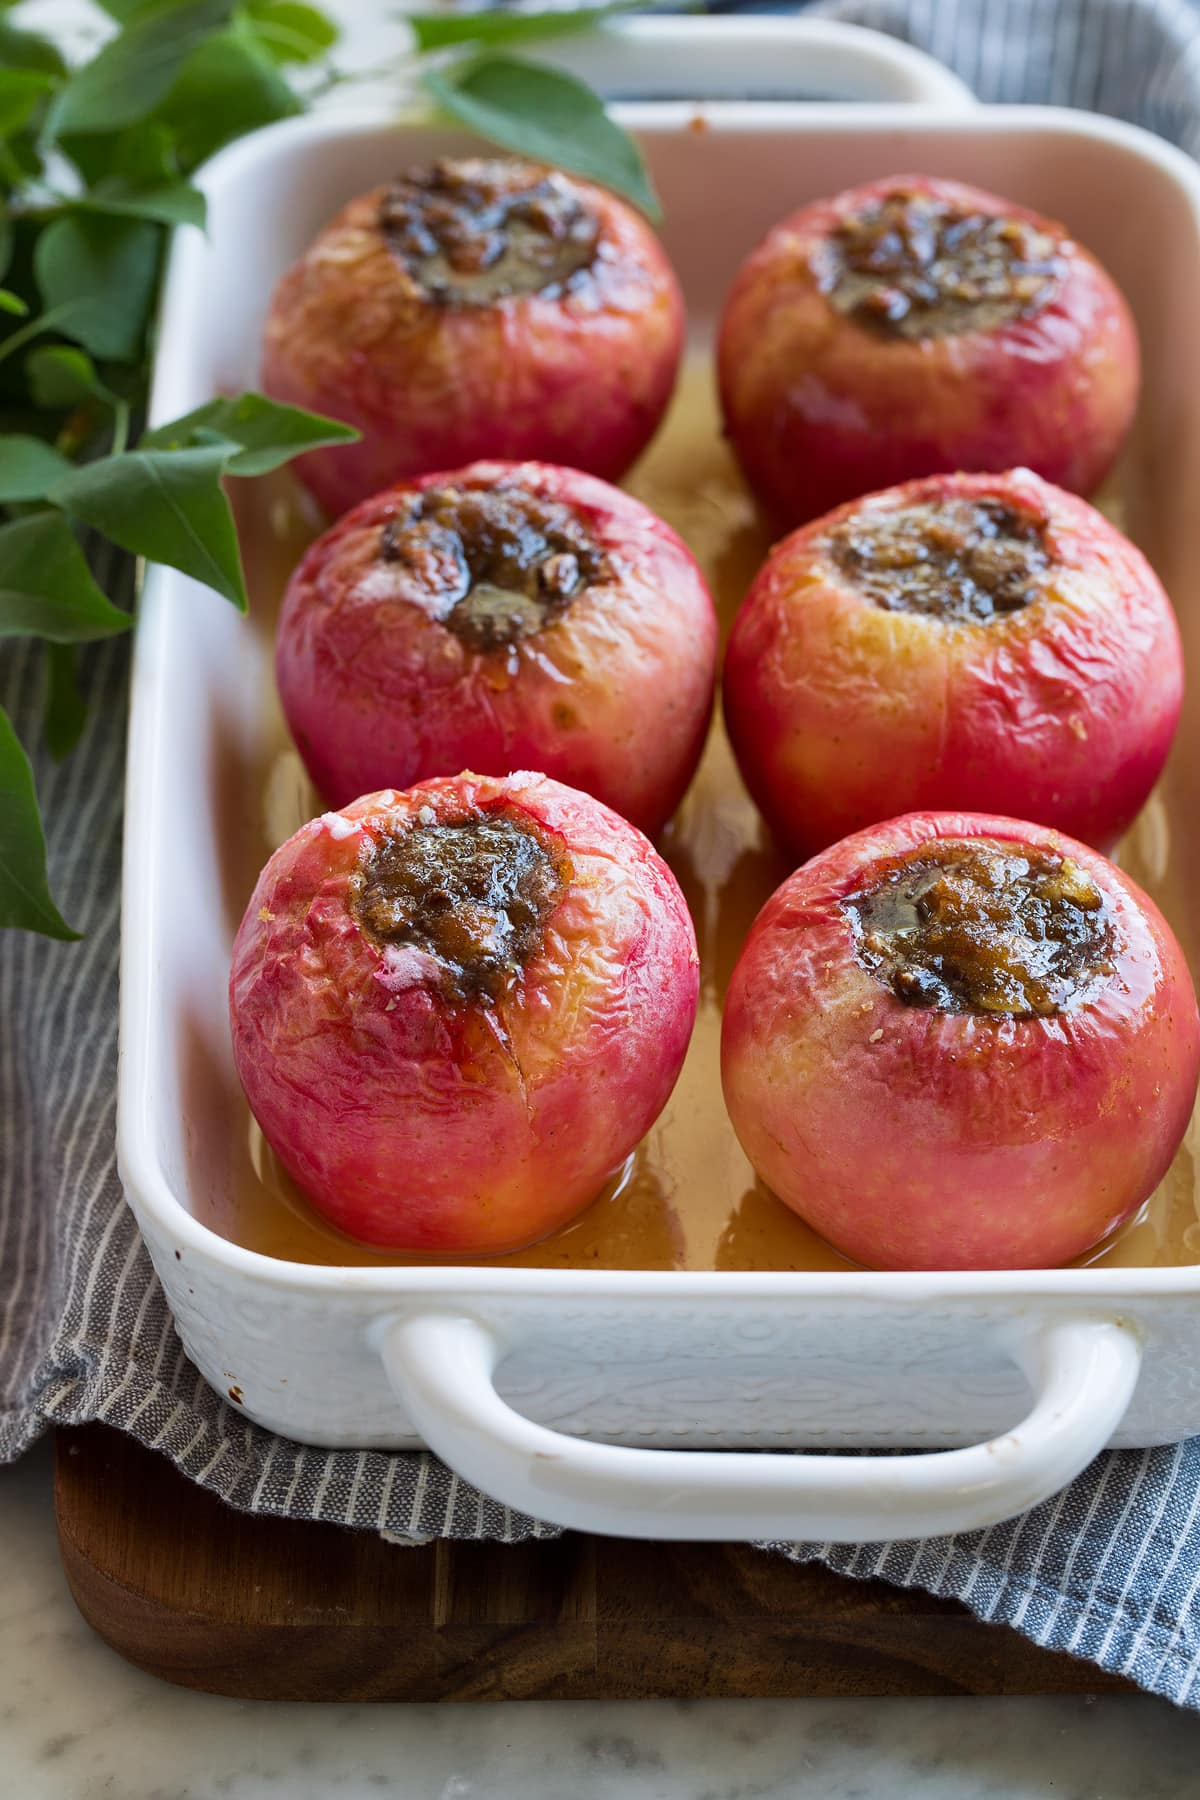 Six baked apples filled with brown sugar filling in a baking dish.